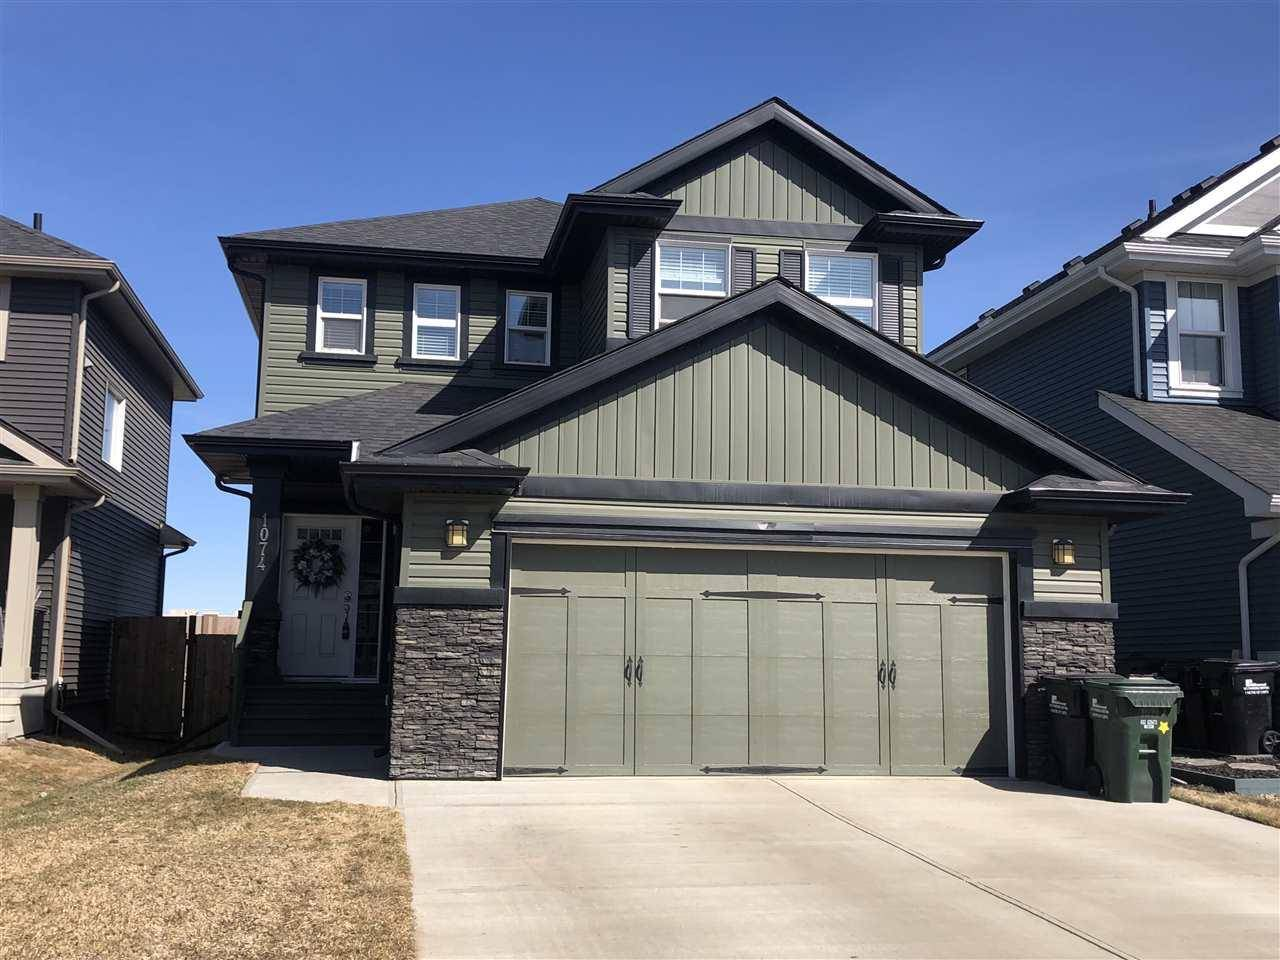 House for sale at 1074 Allendale Cres Sherwood Park Alberta - MLS: E4187229